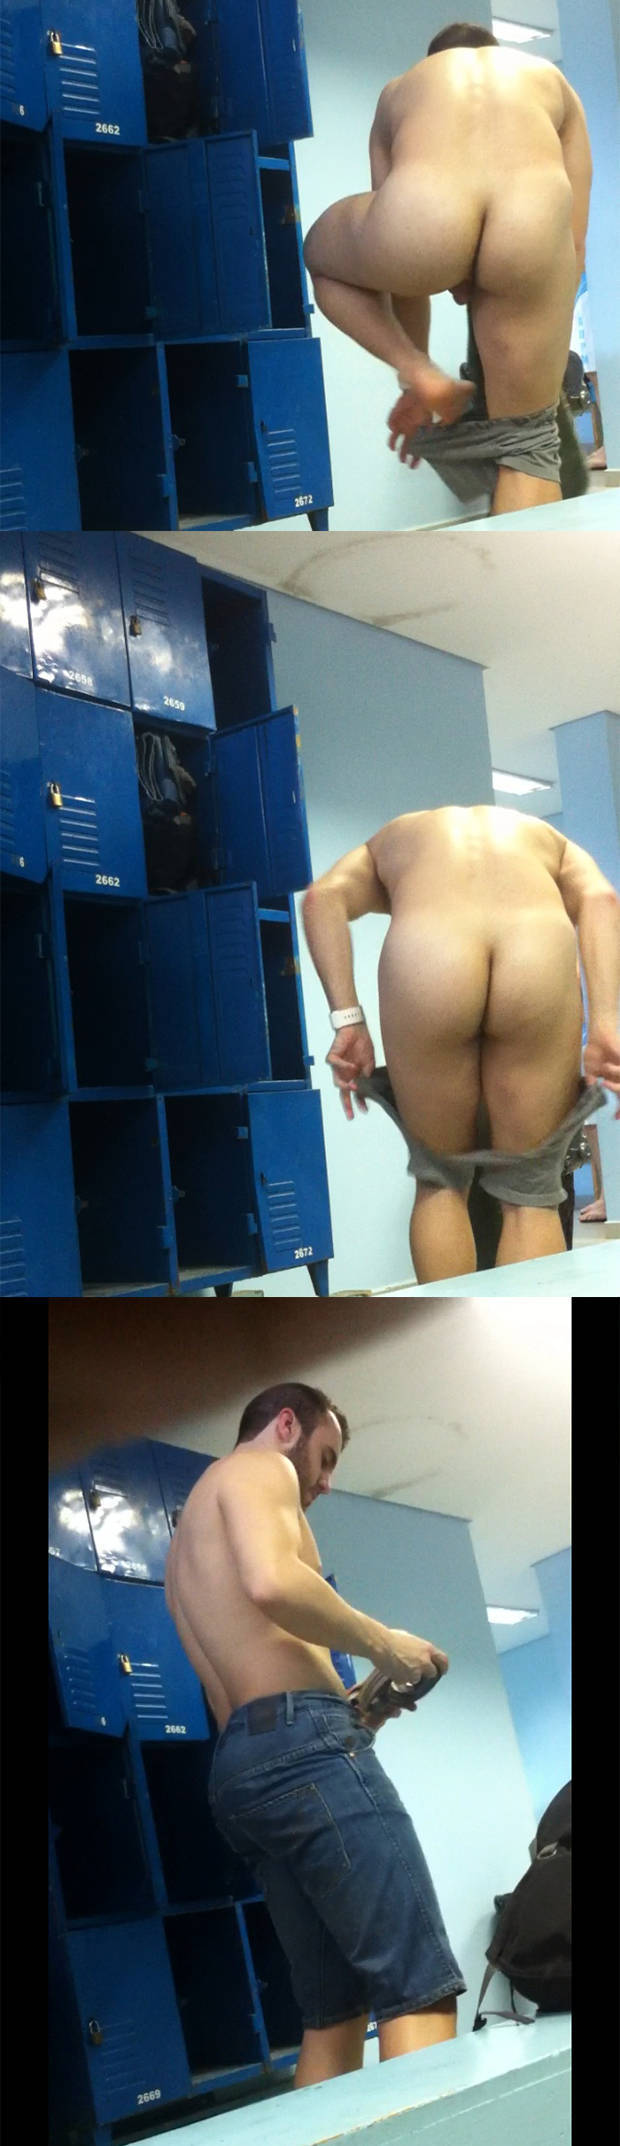 spycam naked bearded guy gym locker room